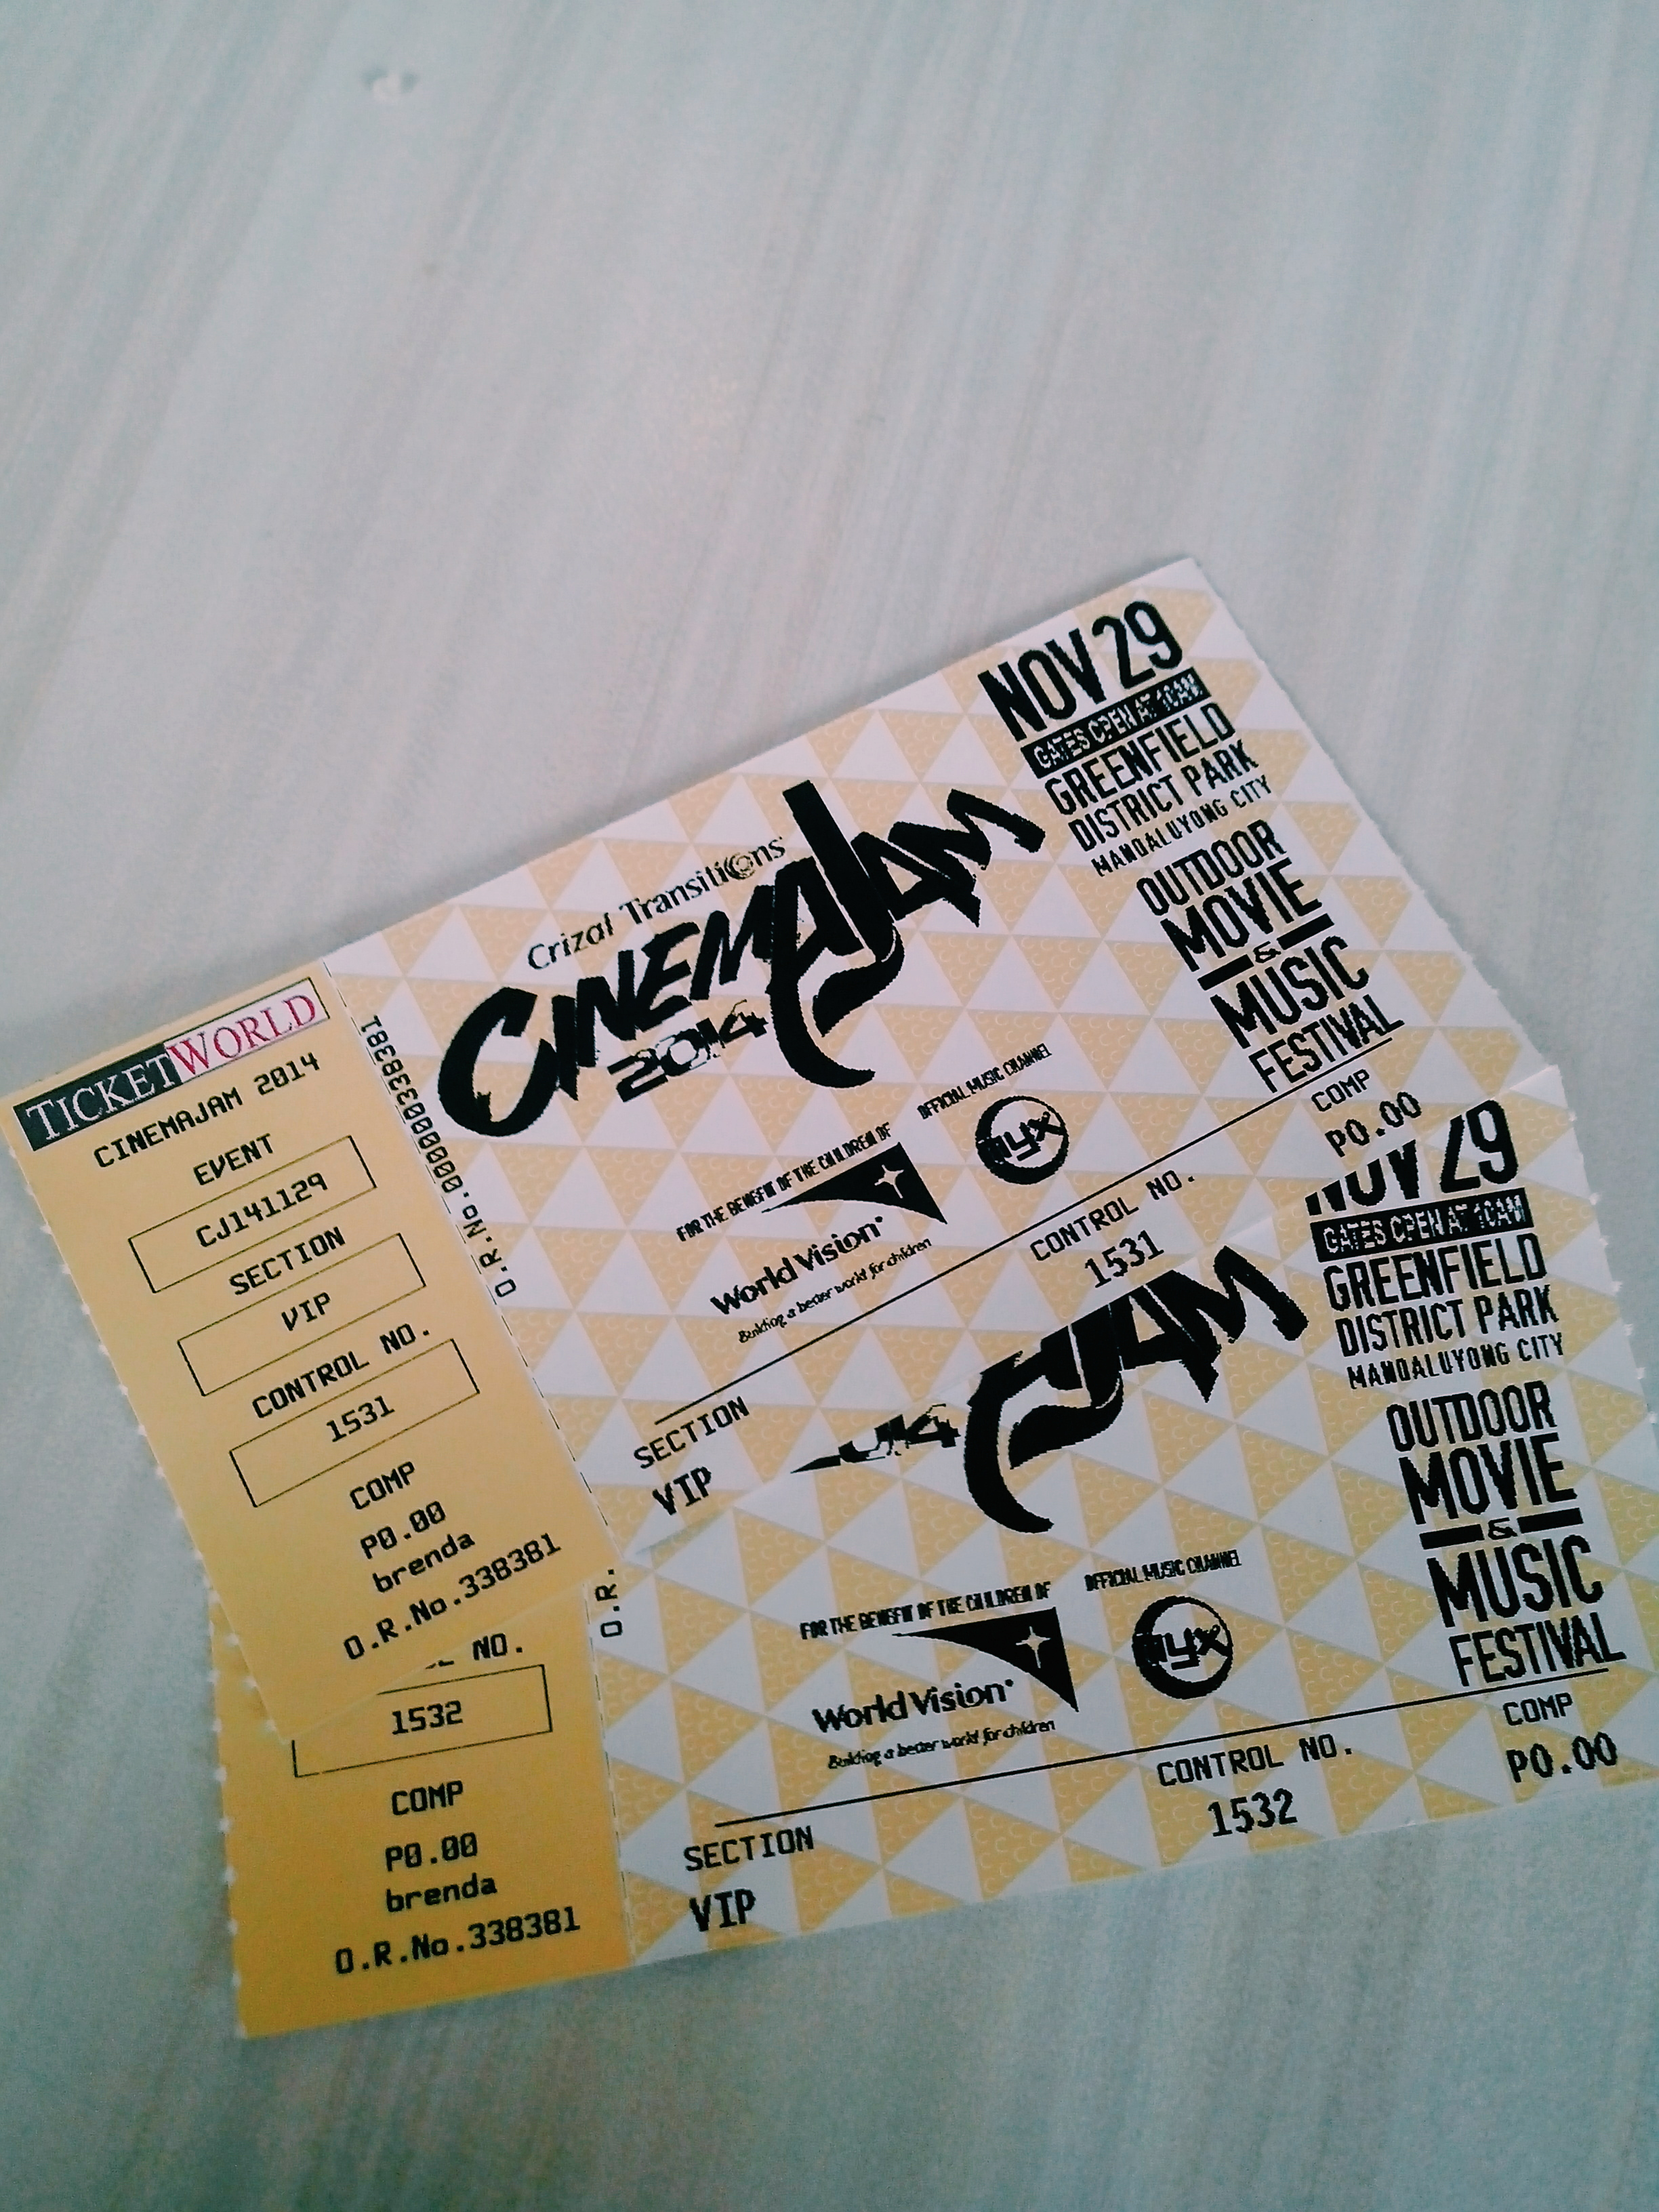 Thank you Kuya Rodel Flordeliz for the tickets :)